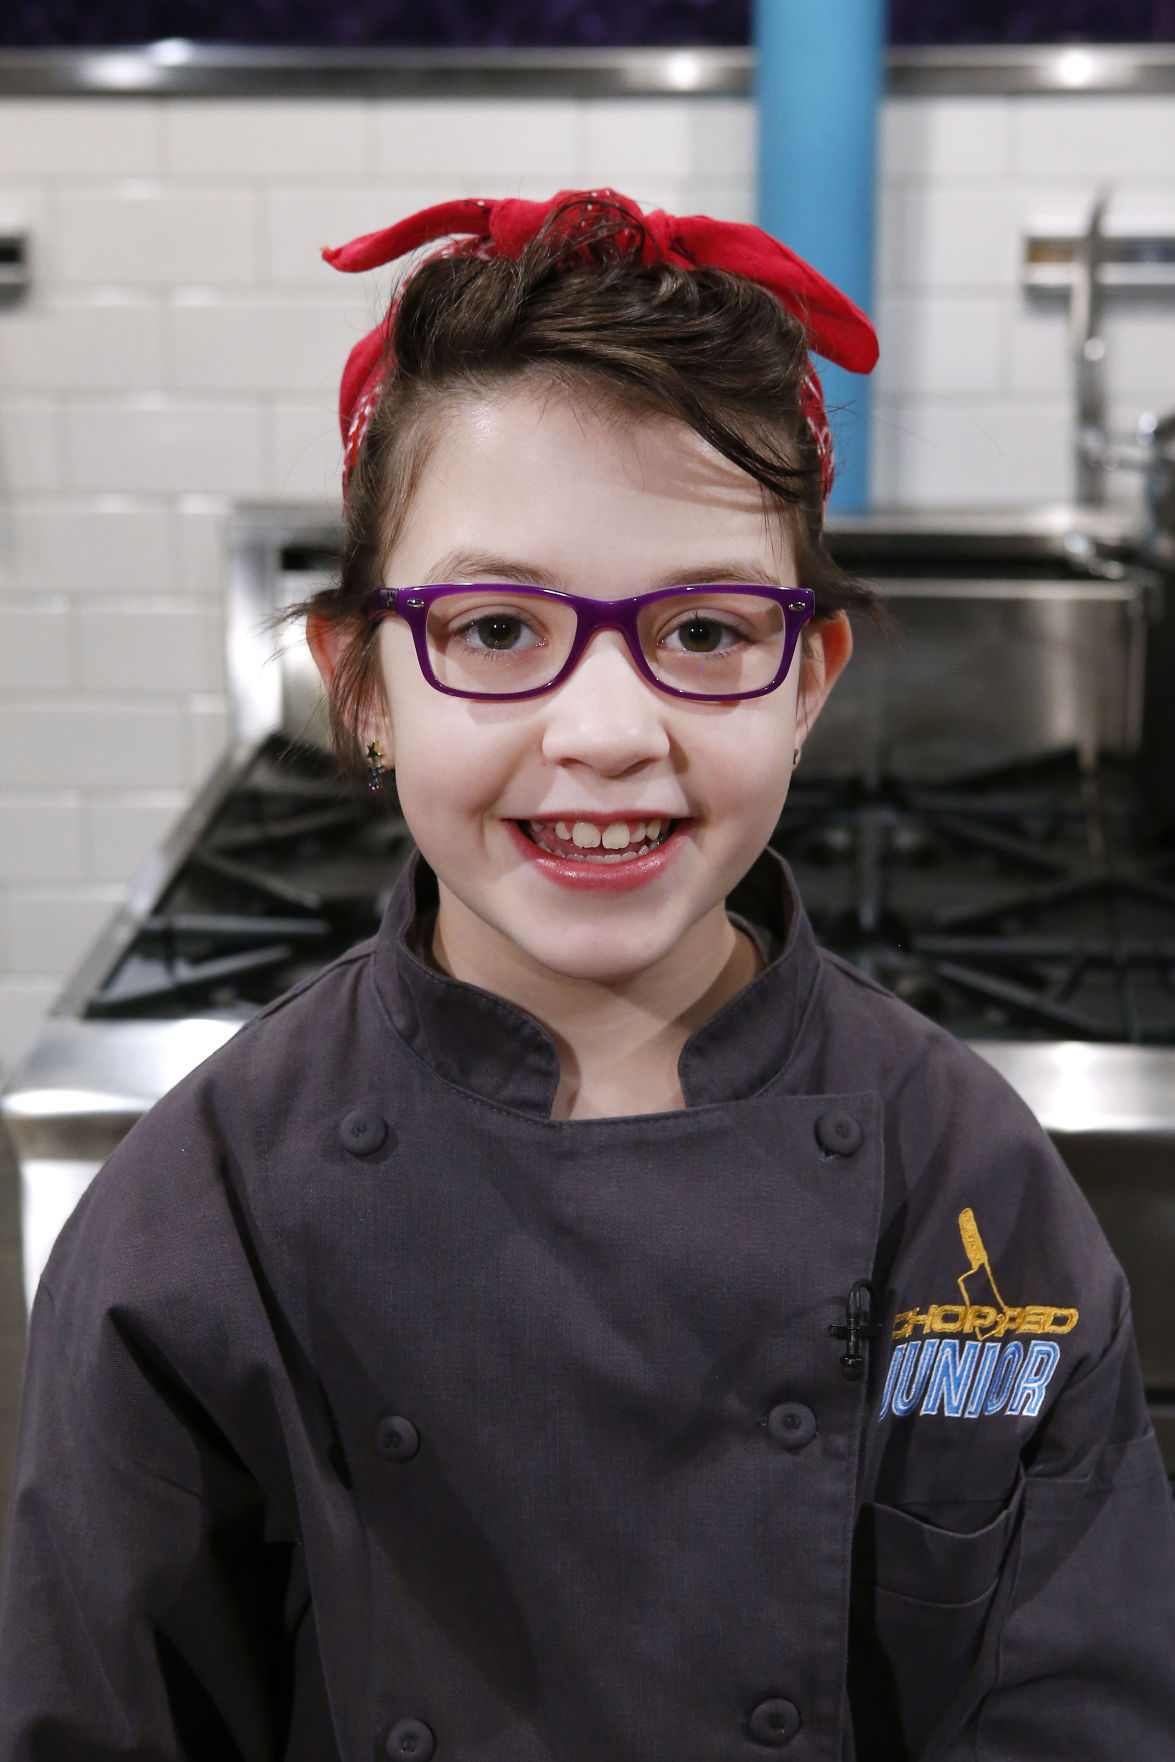 Superb Prime Time Junior Chef Claire Hollingsworth As Seen On Chopped Junior Champ Claire Hollingsworth Back Junior Chopped Junior Full Episodes Free Online Chopped Junior Full Episodes Online nice food Chopped Junior Full Episodes